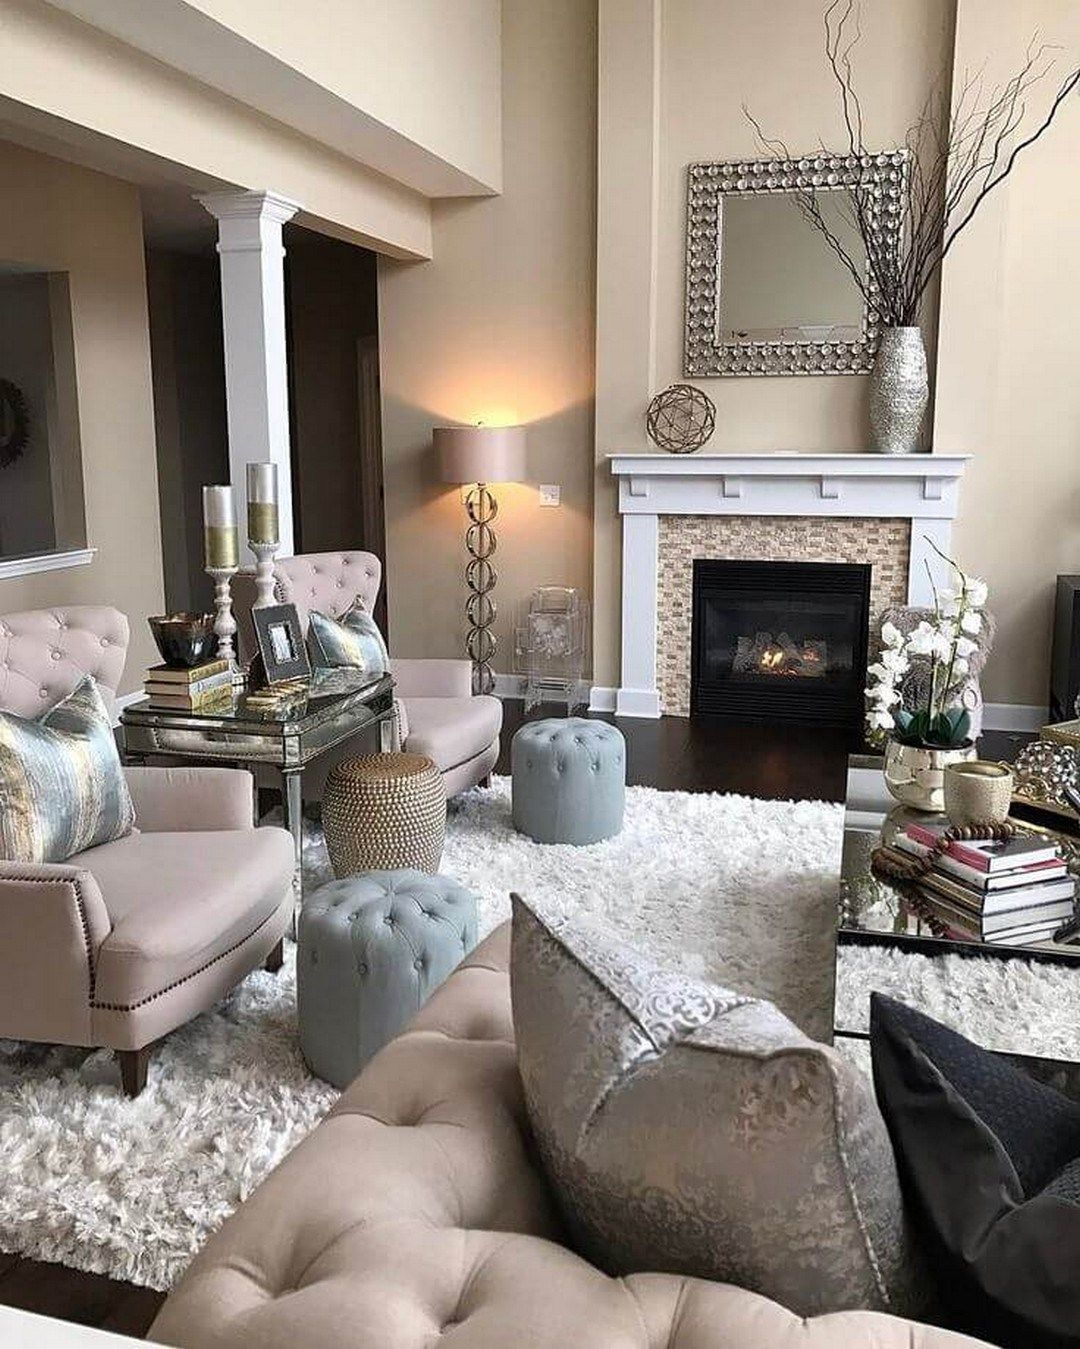 23 Charming Beige Living Room Design Ideas To Brighten Up Your Life Beige Living Rooms Home Home Decor